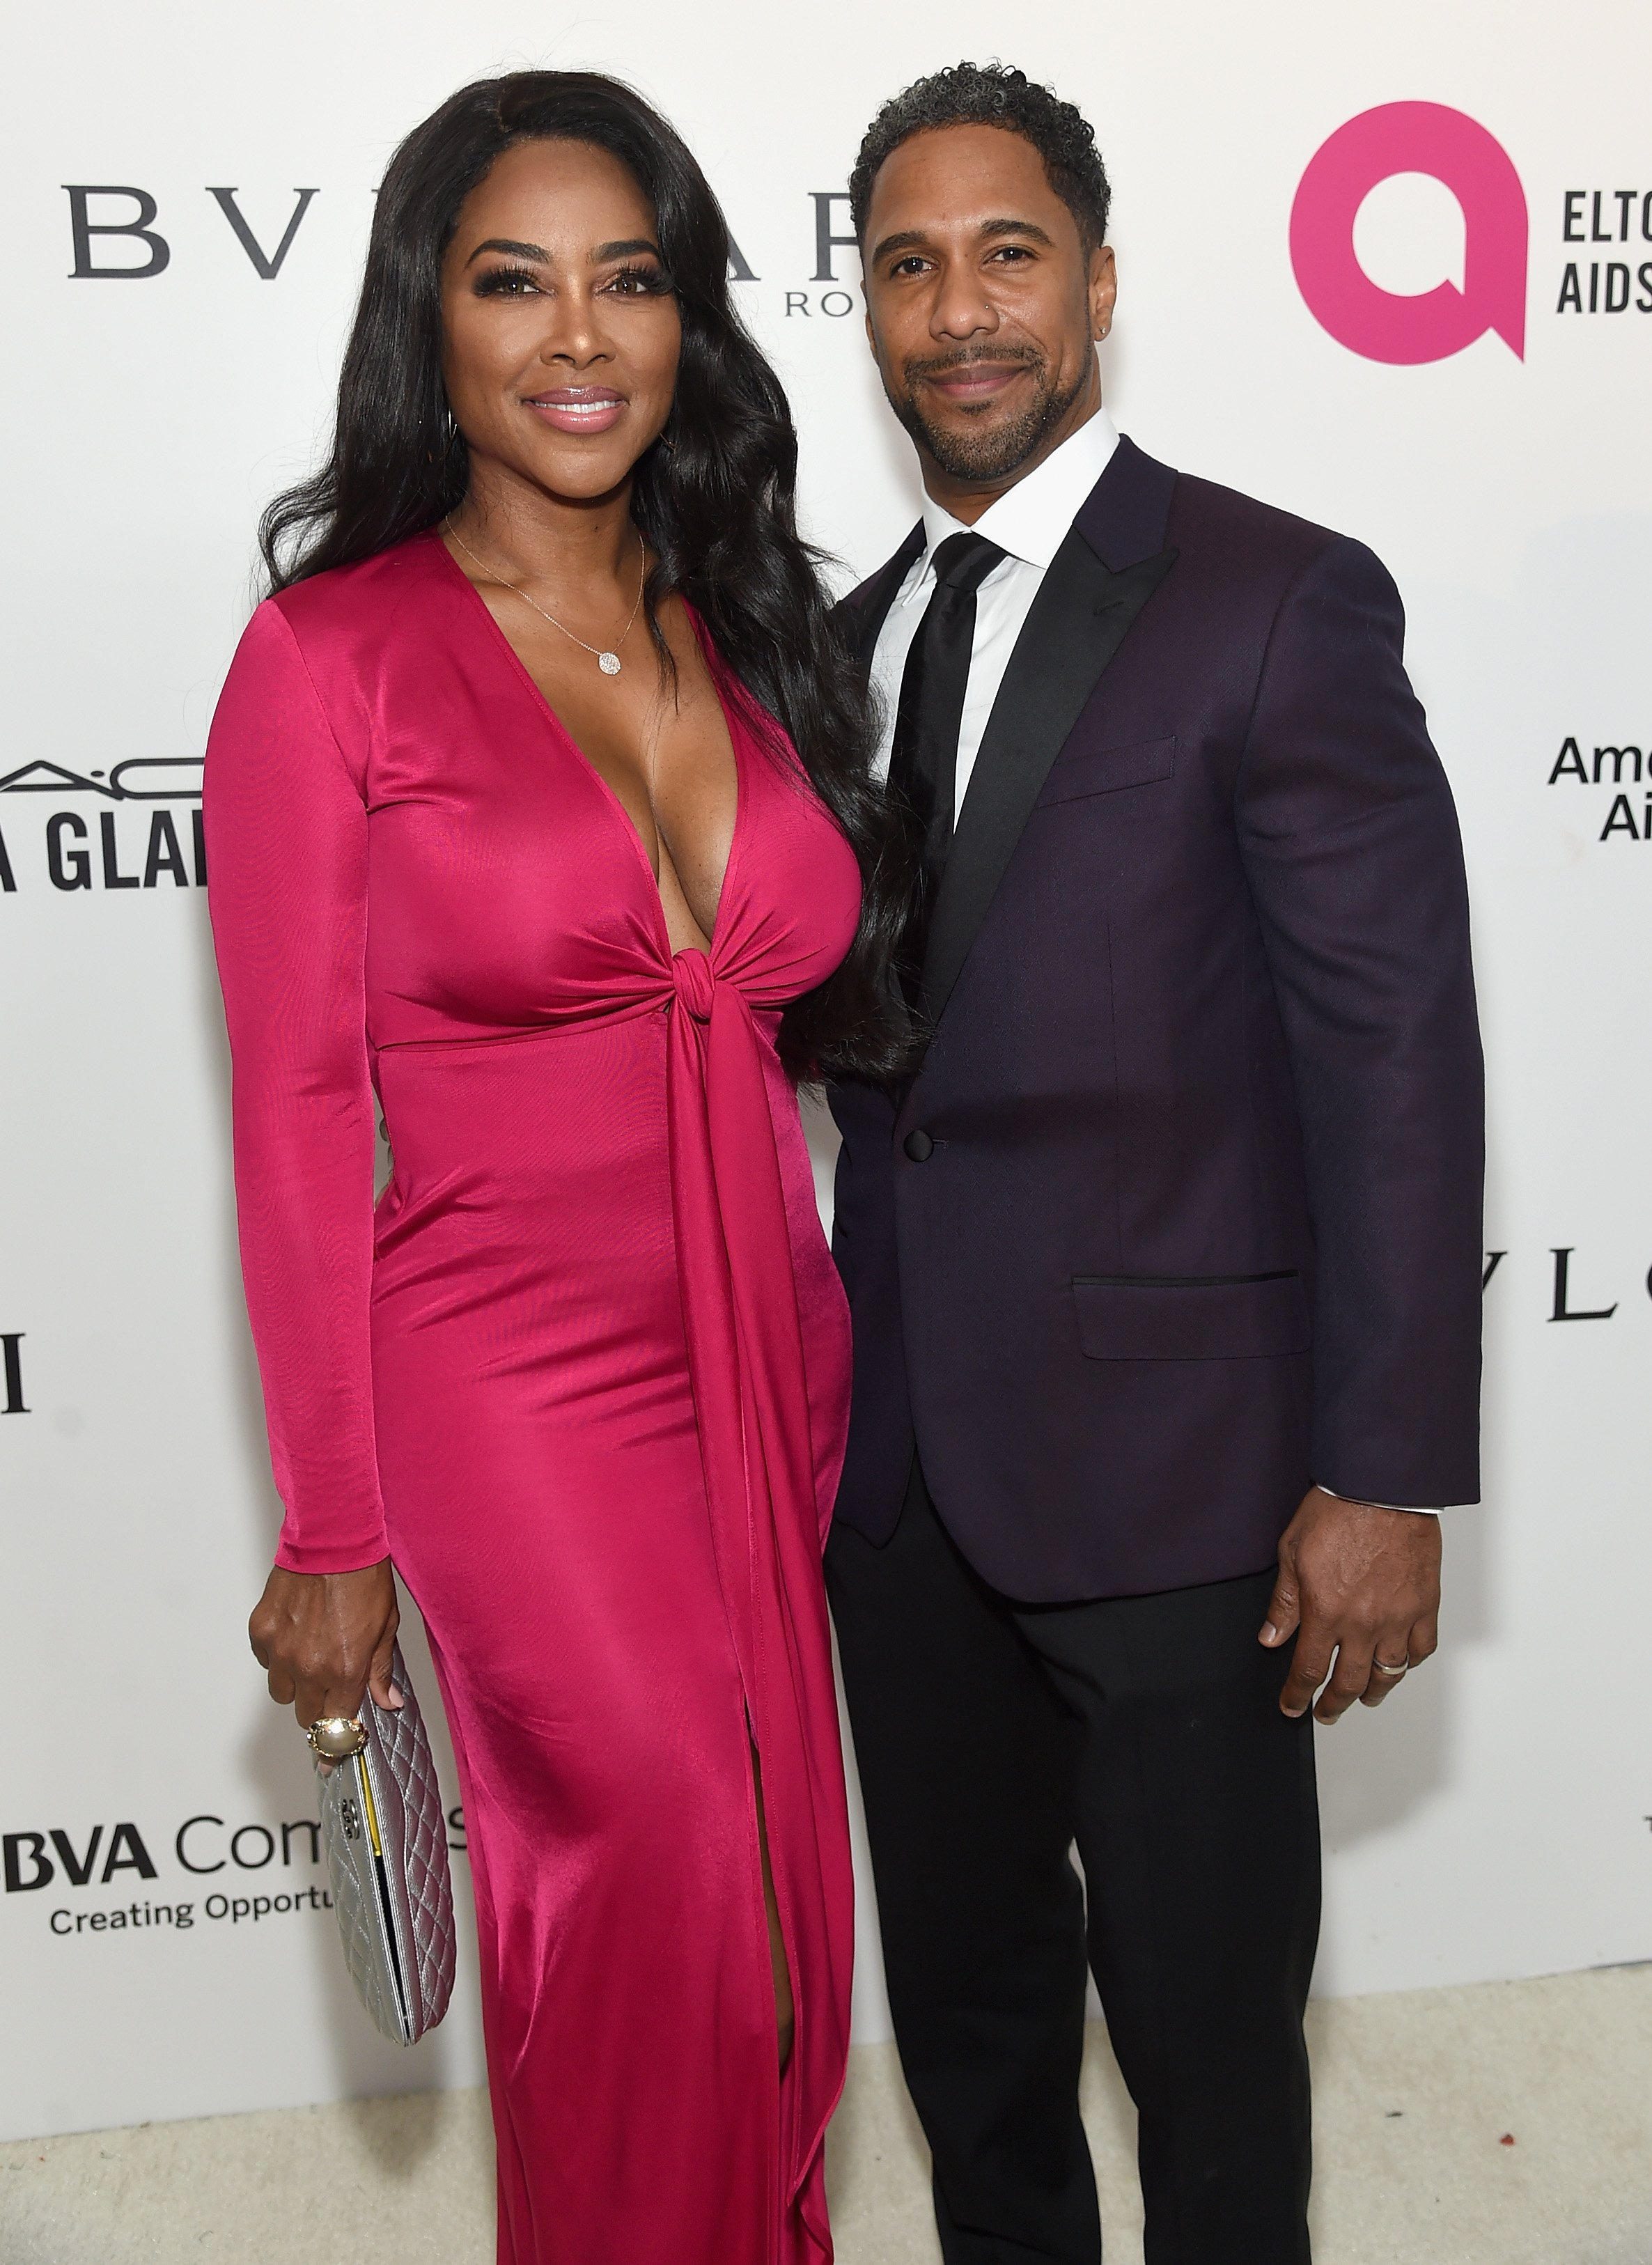 Kenya Moore & Marc Daly at the Elton John AIDS Foundation's Academy Awards Viewing Party in California on Mar. 4, 2018 | Photo: Getty Images